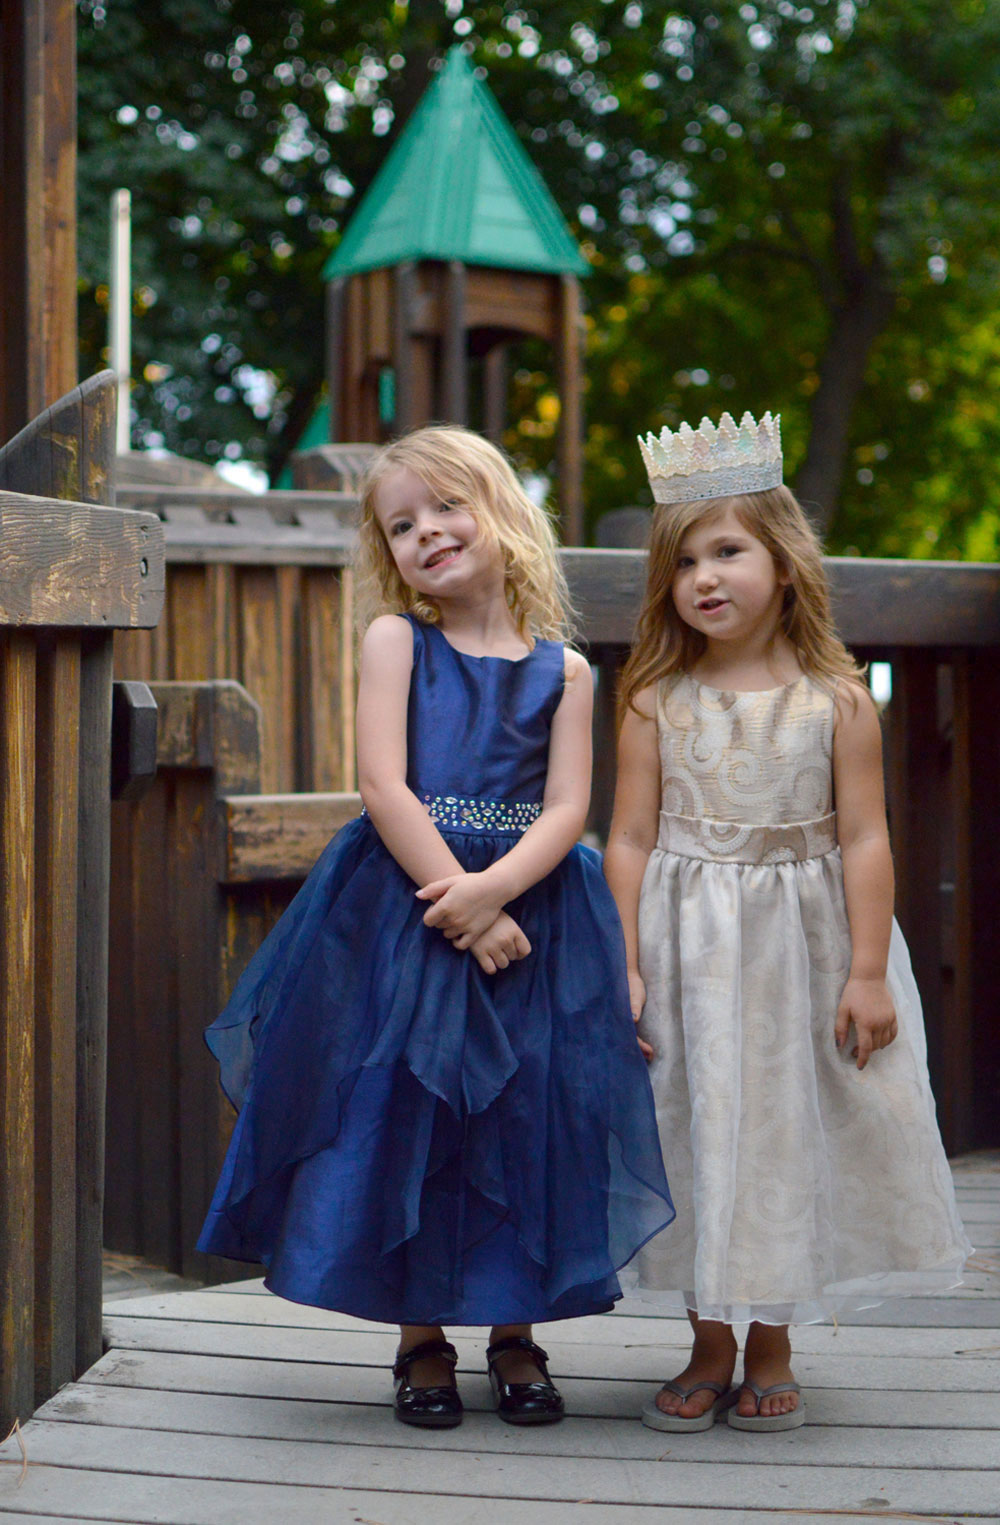 Just Unique Boutique princesses at the park